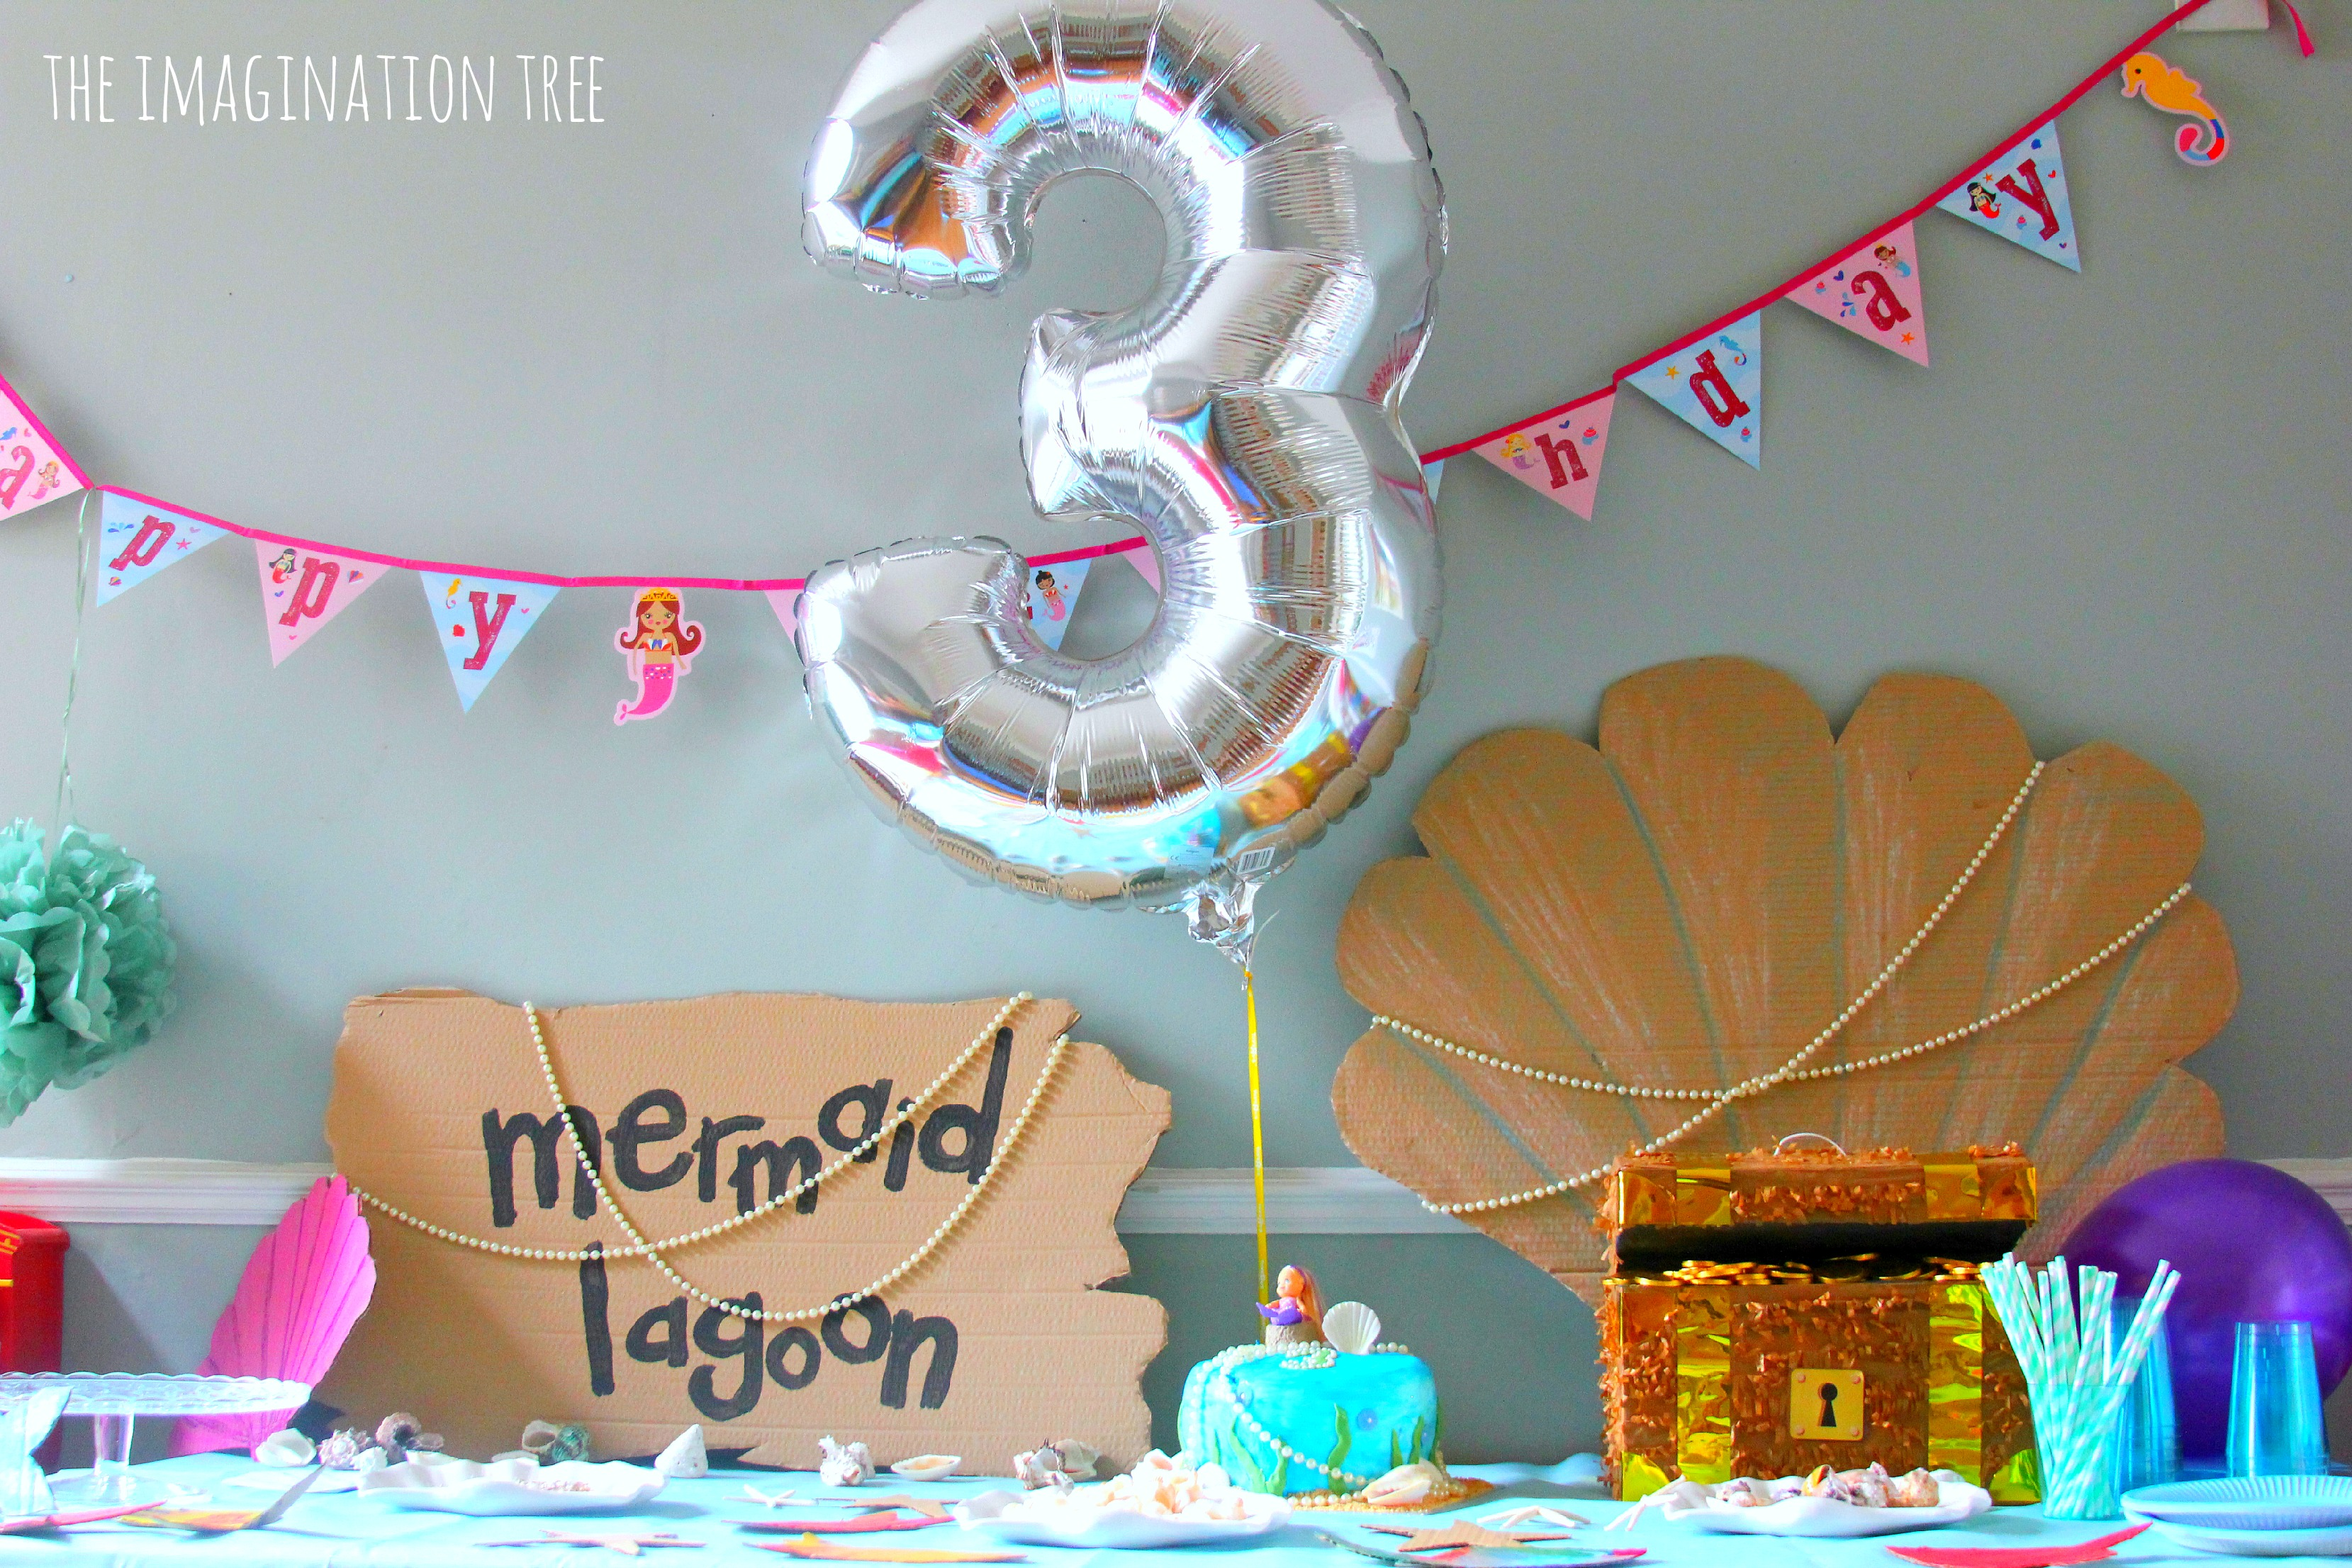 Mermaid Birthday Party Ideas - The Imagination Tree for Decoration Ideas For Birthday Party At Home Kids  545xkb